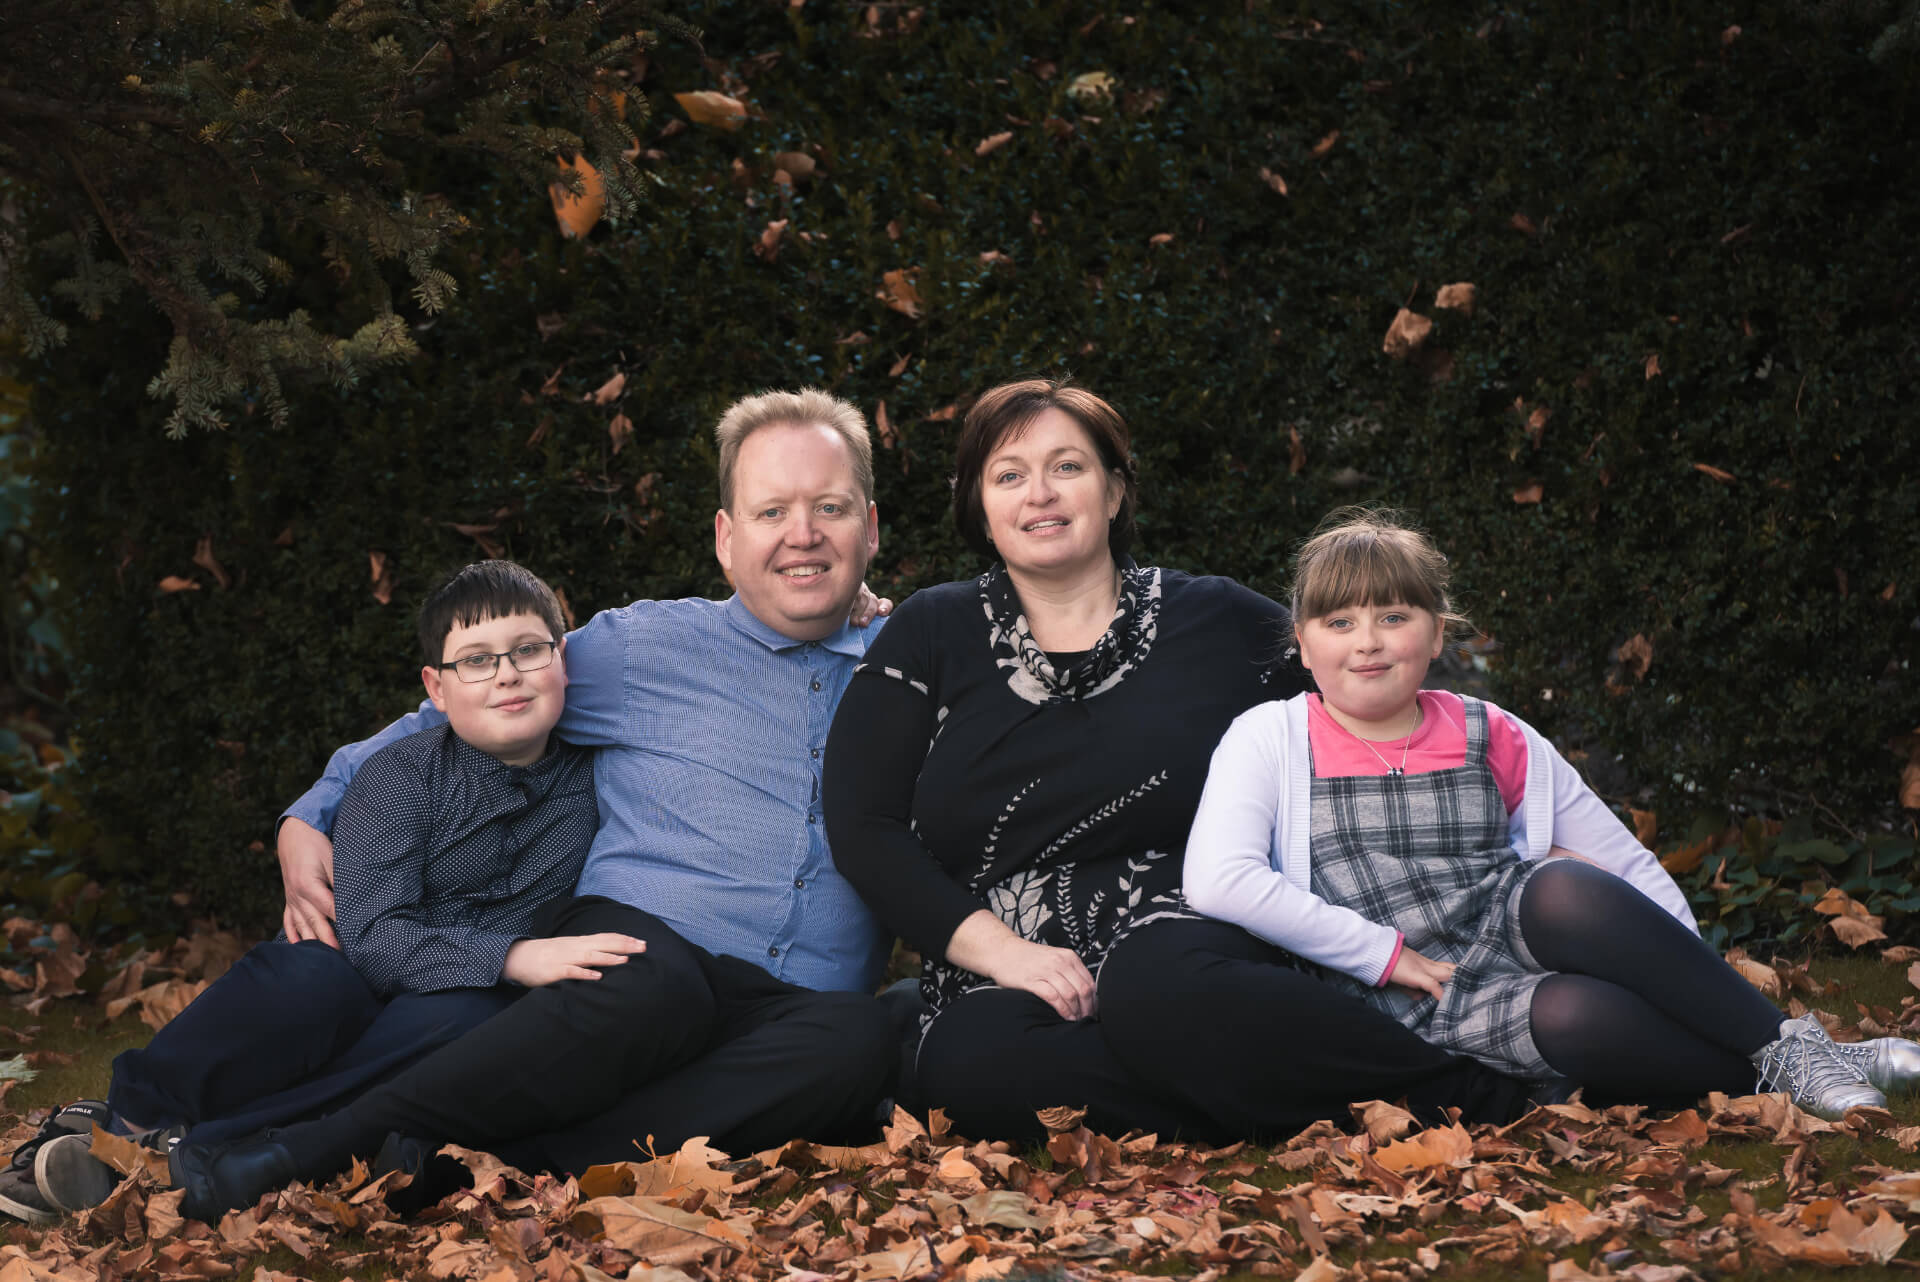 autumn outdoor family photoshoot Slice of Life Photography - Spalding photographer